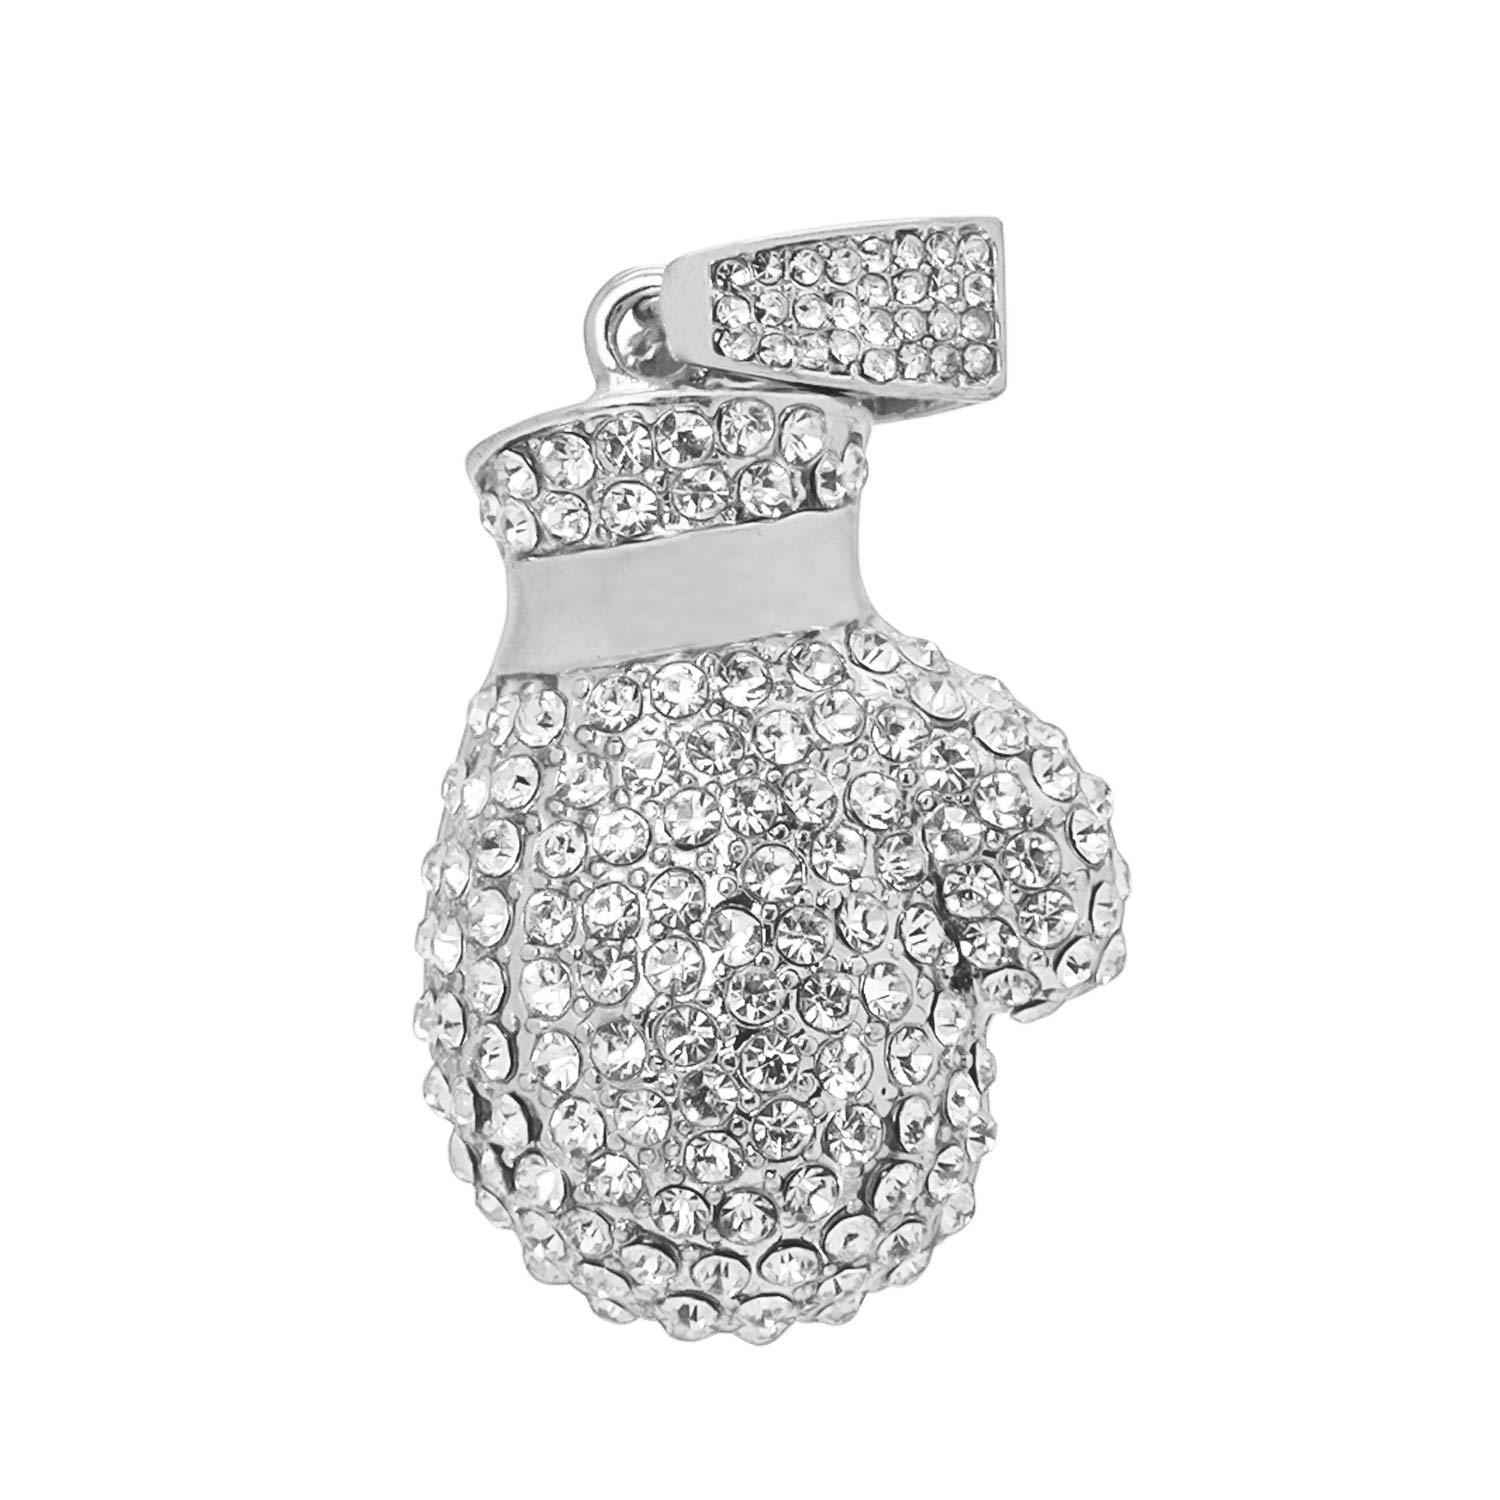 White Gold-Tone Iced Out Hip Hop Bling Boxing Glove Pendant with Princess Cut Cubic Zirconia 24 Tennis Chain and 24 Rope Chain